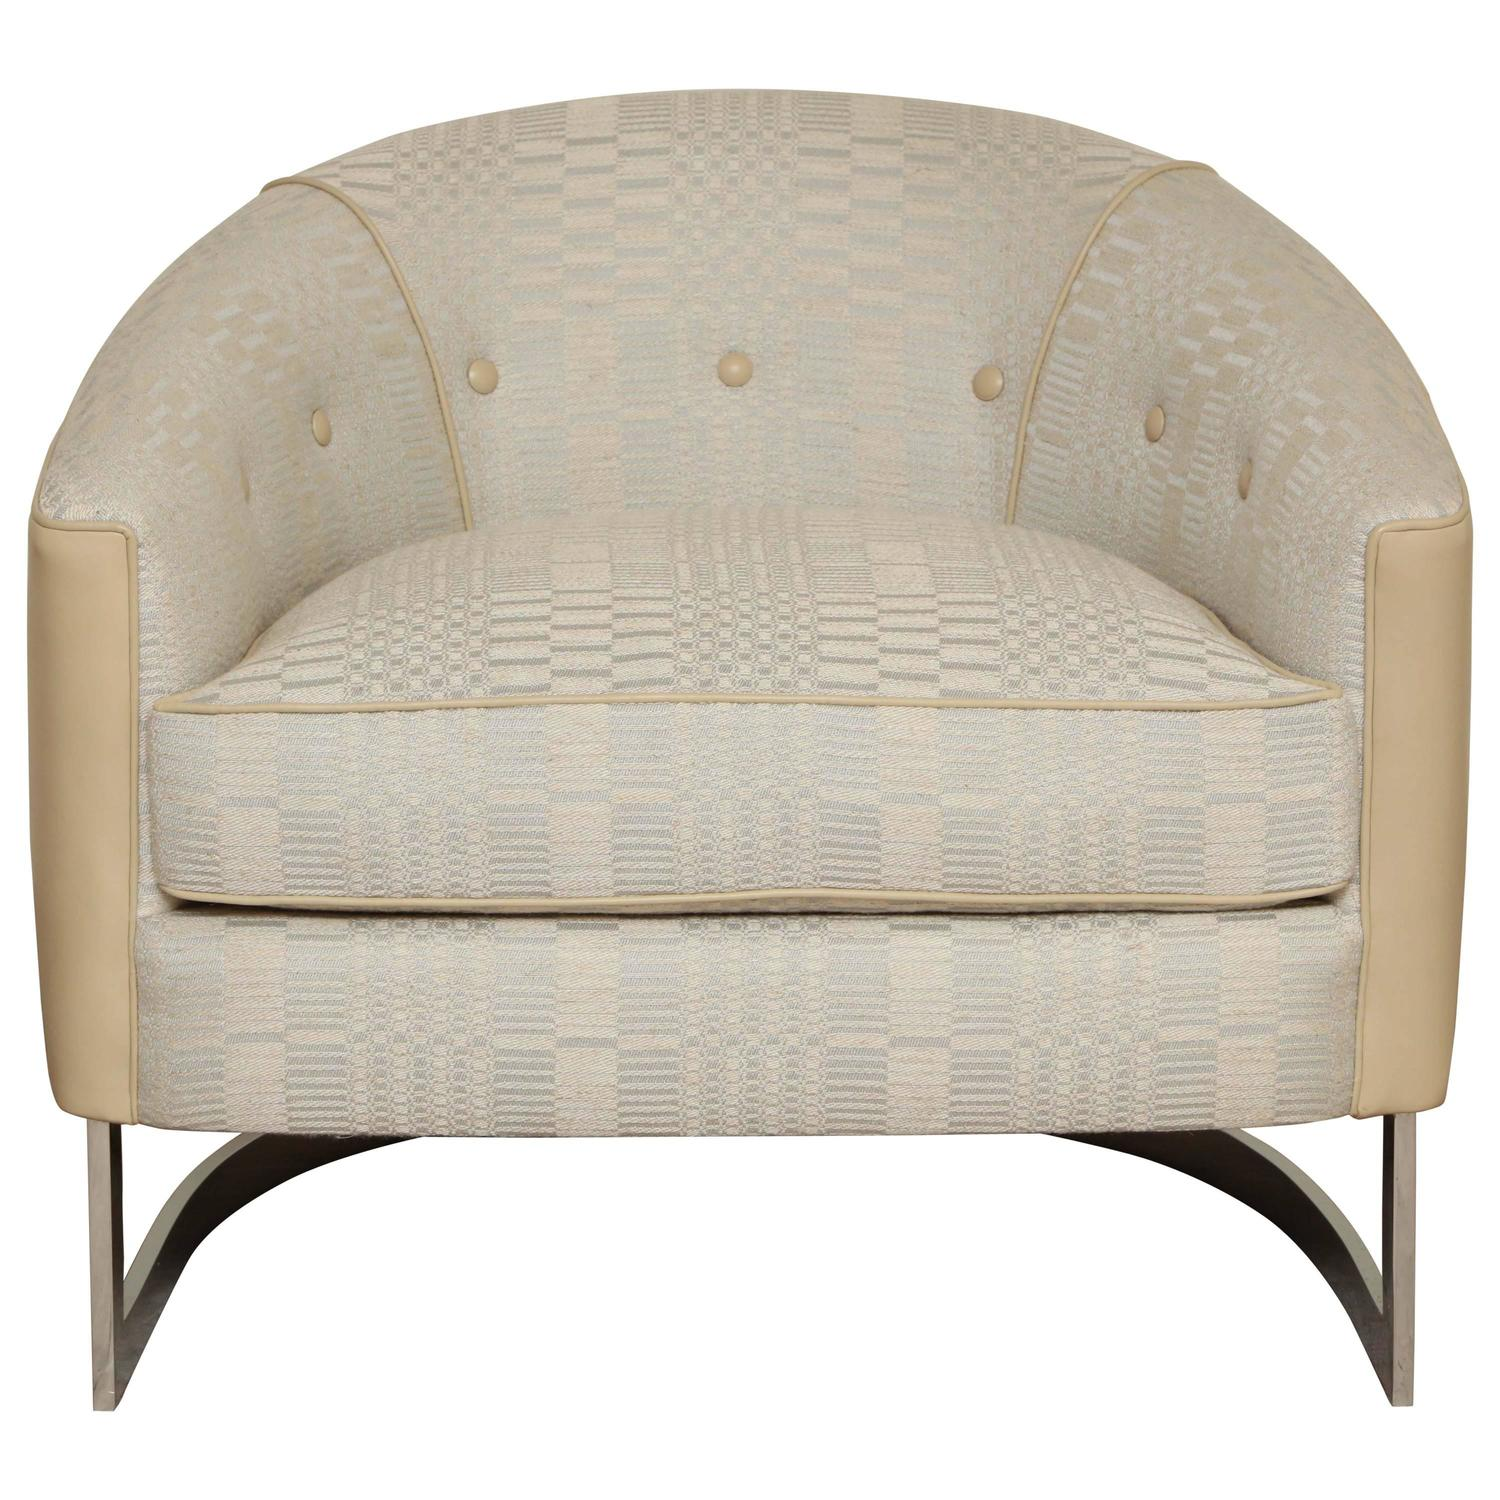 Barrel back chair by selig for sale at 1stdibs - Selig z chair for sale ...